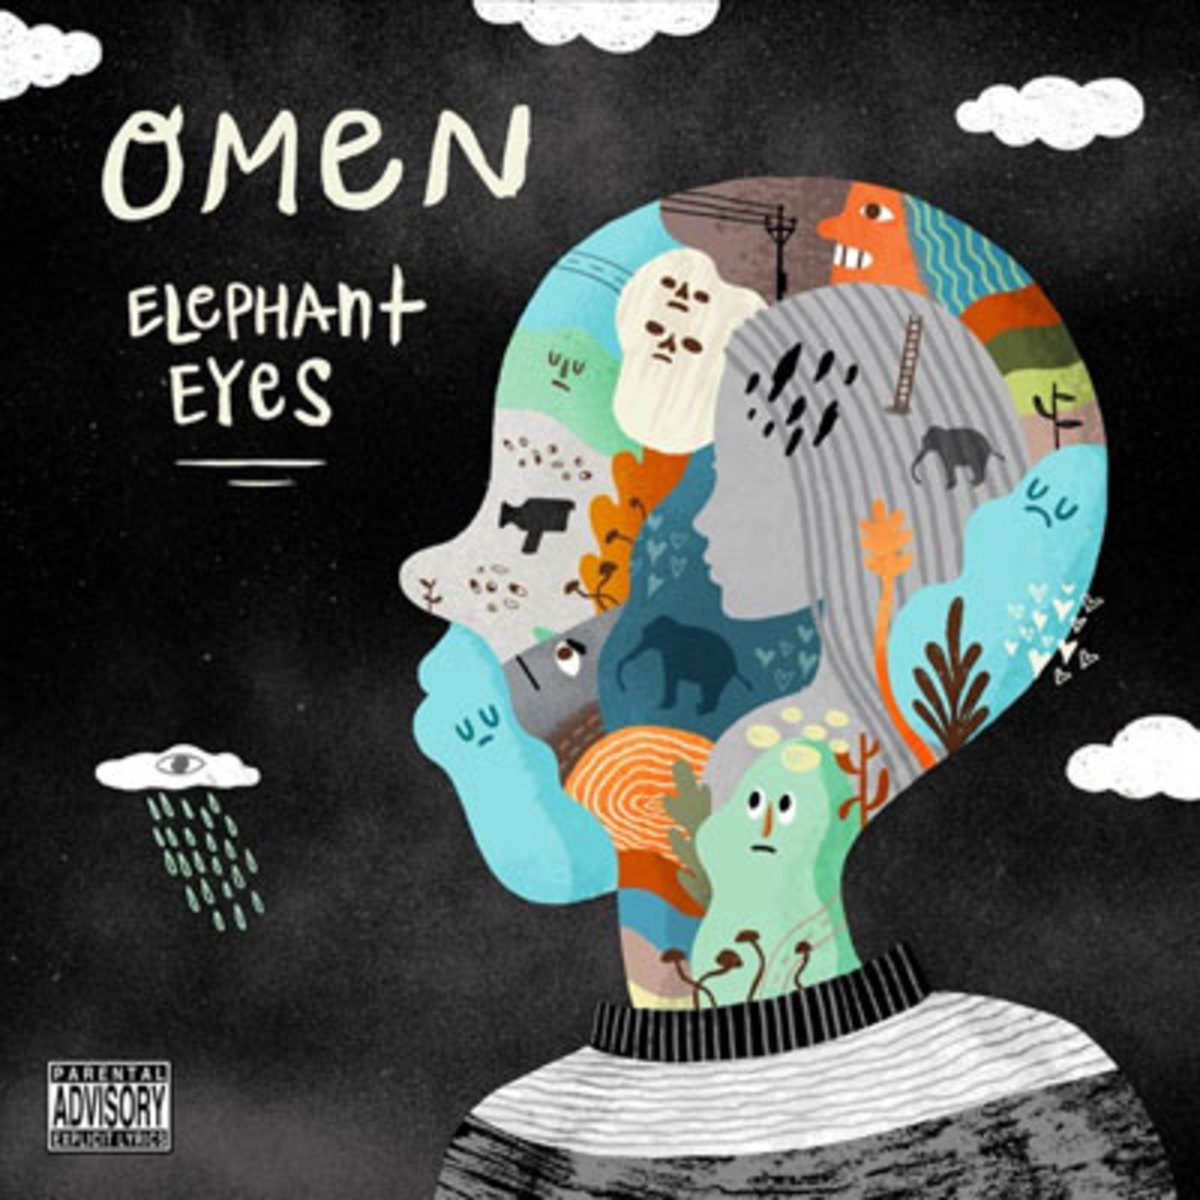 omen-elephant-eyes.jpg